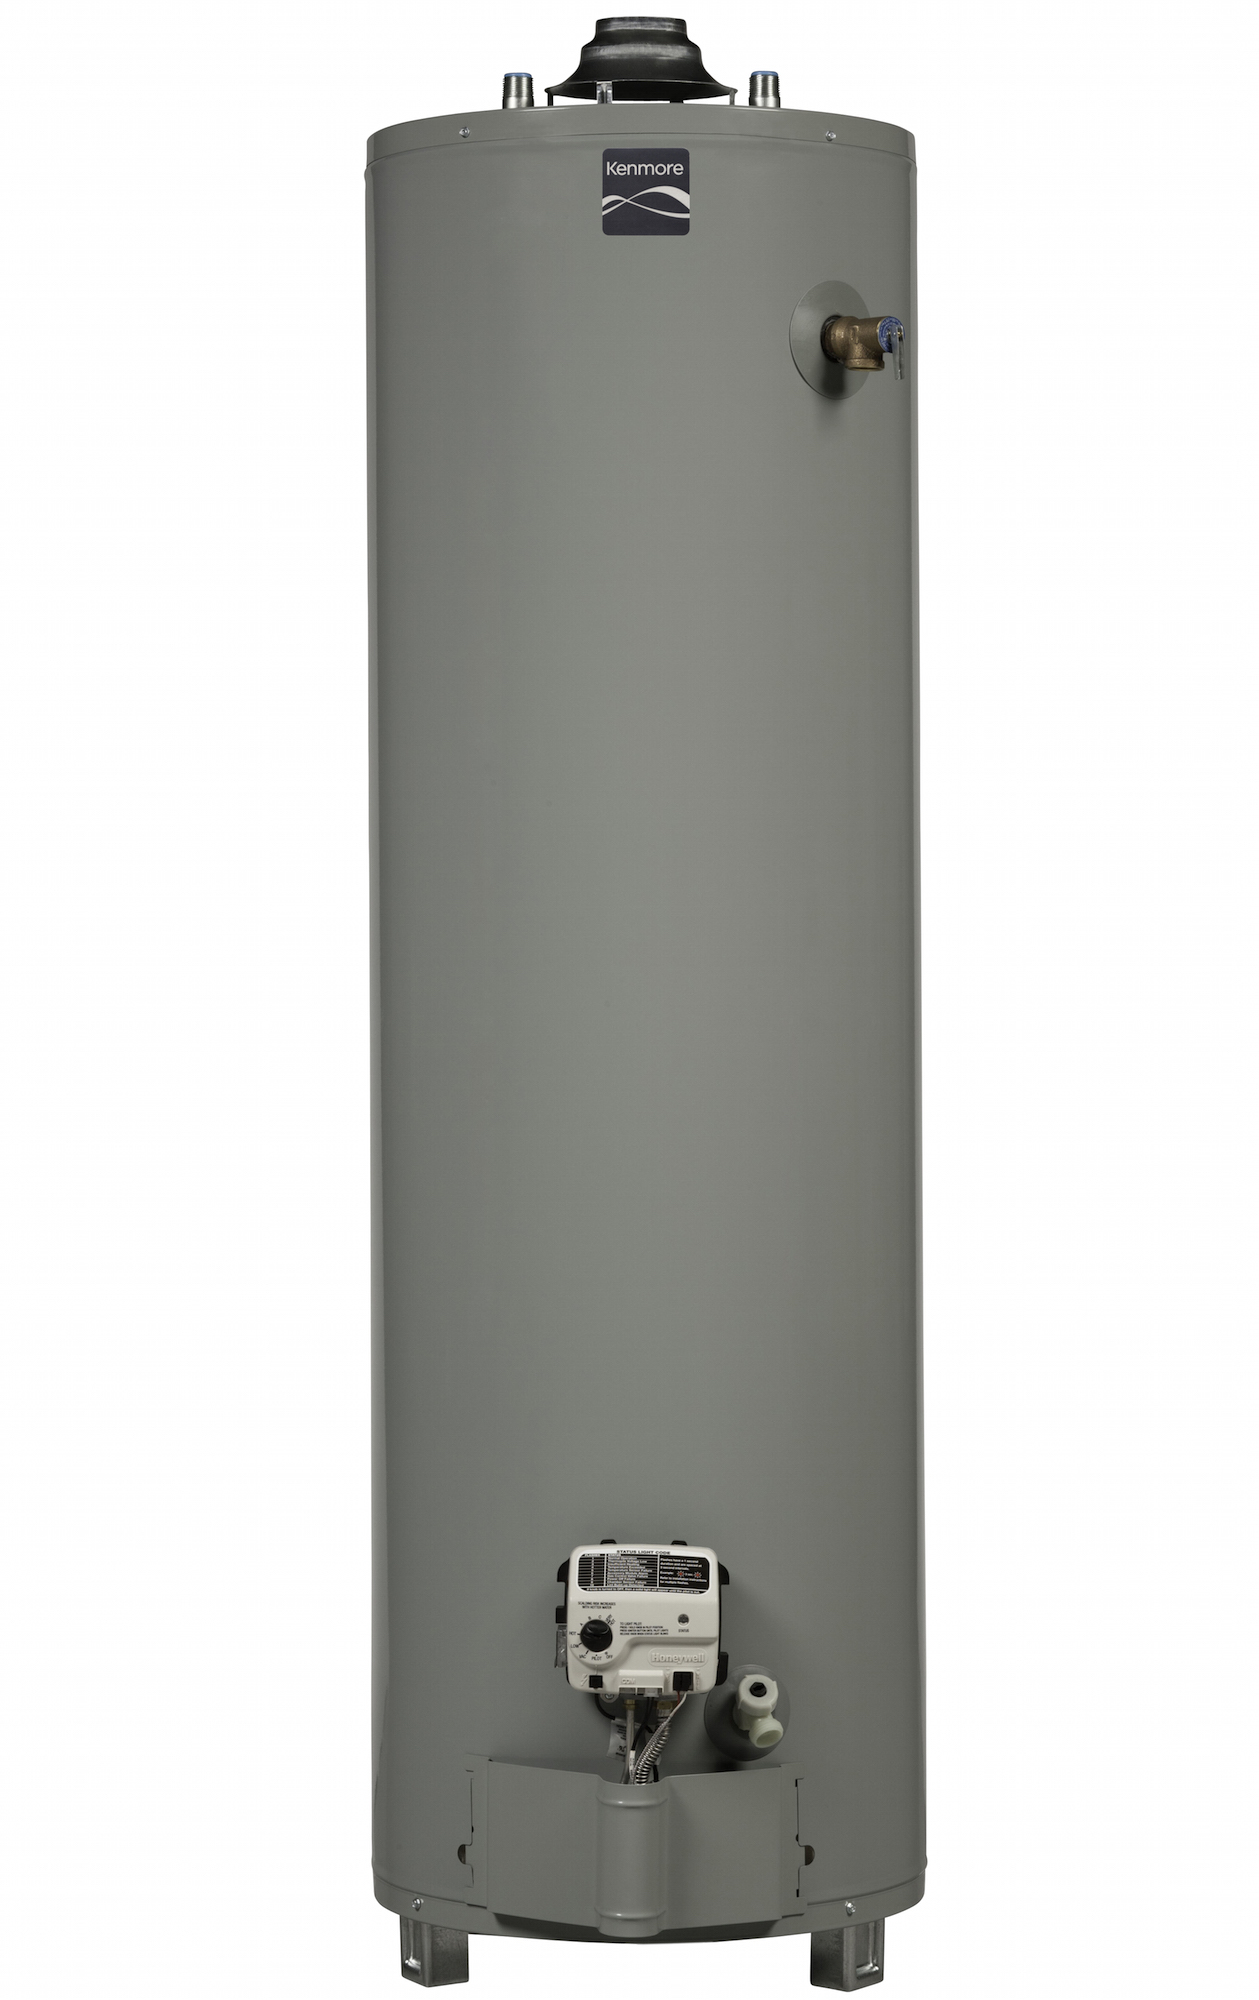 Kenmore 55650 50 gal. 6-Year Tall Natural Gas Ultra Low NOx Water Heater (Select California Markets) PartNumber: 04255650000P KsnValue: 04255650000 MfgPartNumber: 55650